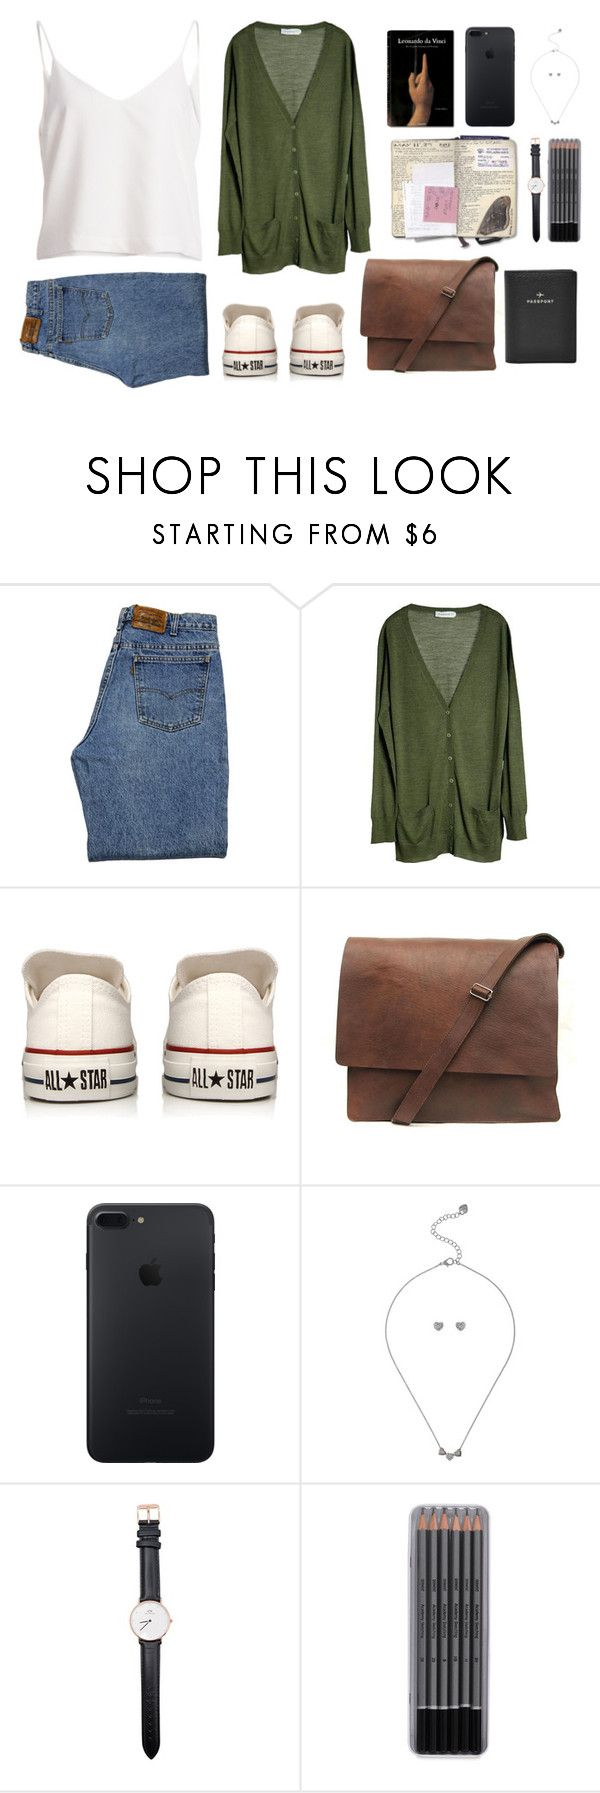 """Just going away"" by yasminferrare ❤ liked on Polyvore featuring Levi's, MÃ¥nestrÃ¥le, Converse, Taschen, Lipsy, Daniel Wellington and FOSSIL"